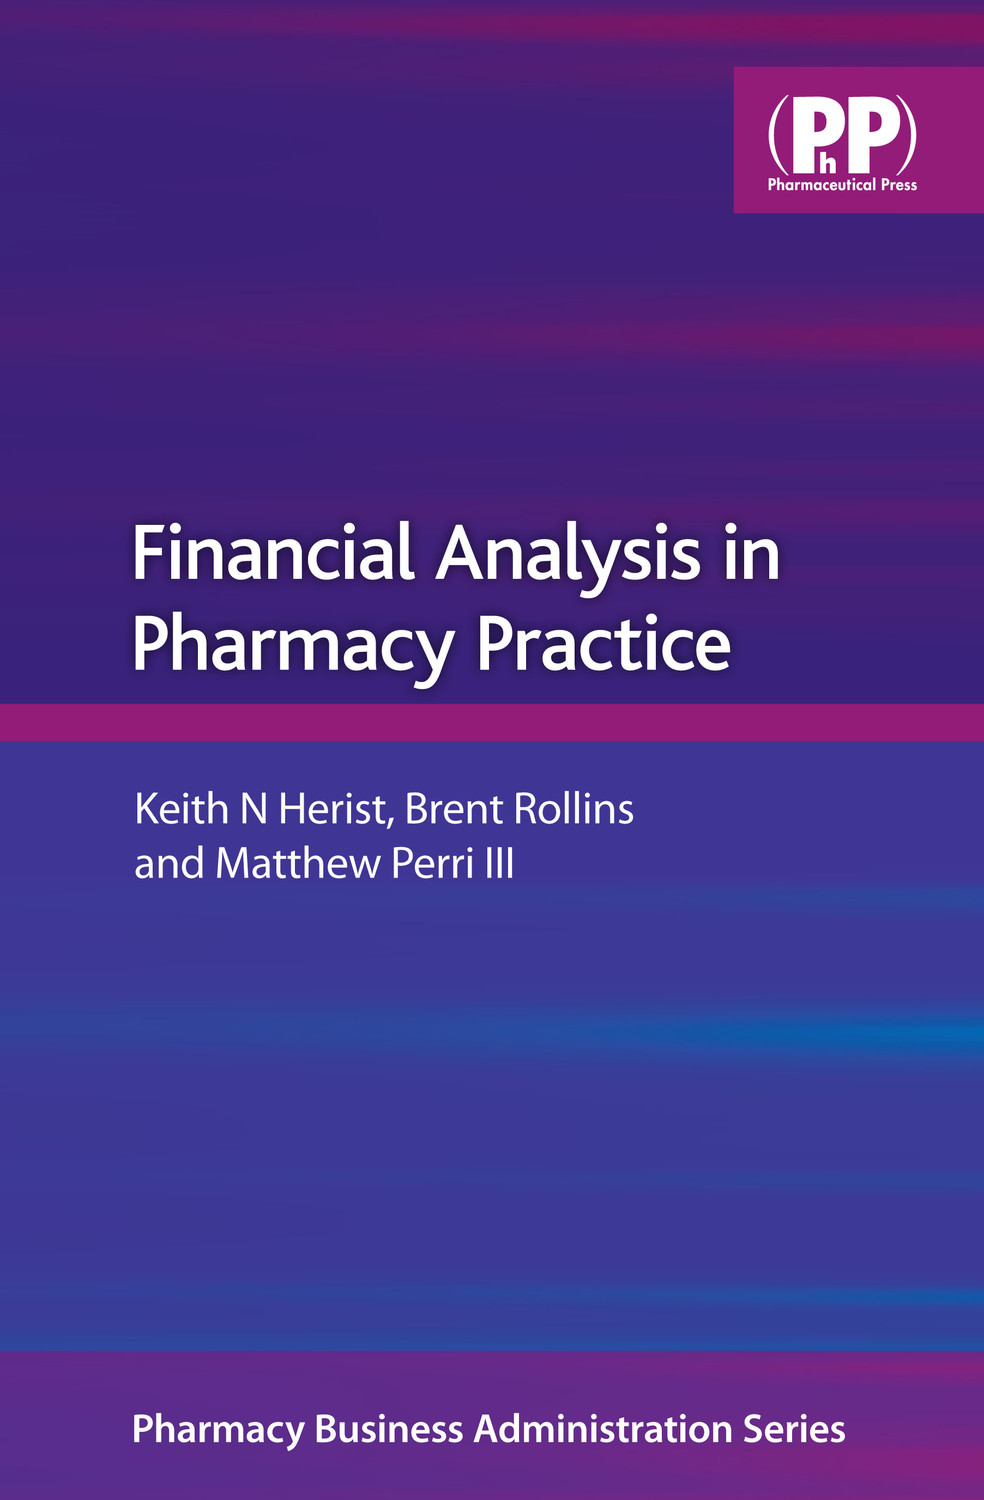 Download Ebook Financial Analysis in Pharmacy Practice by Keith N. Herist Pdf